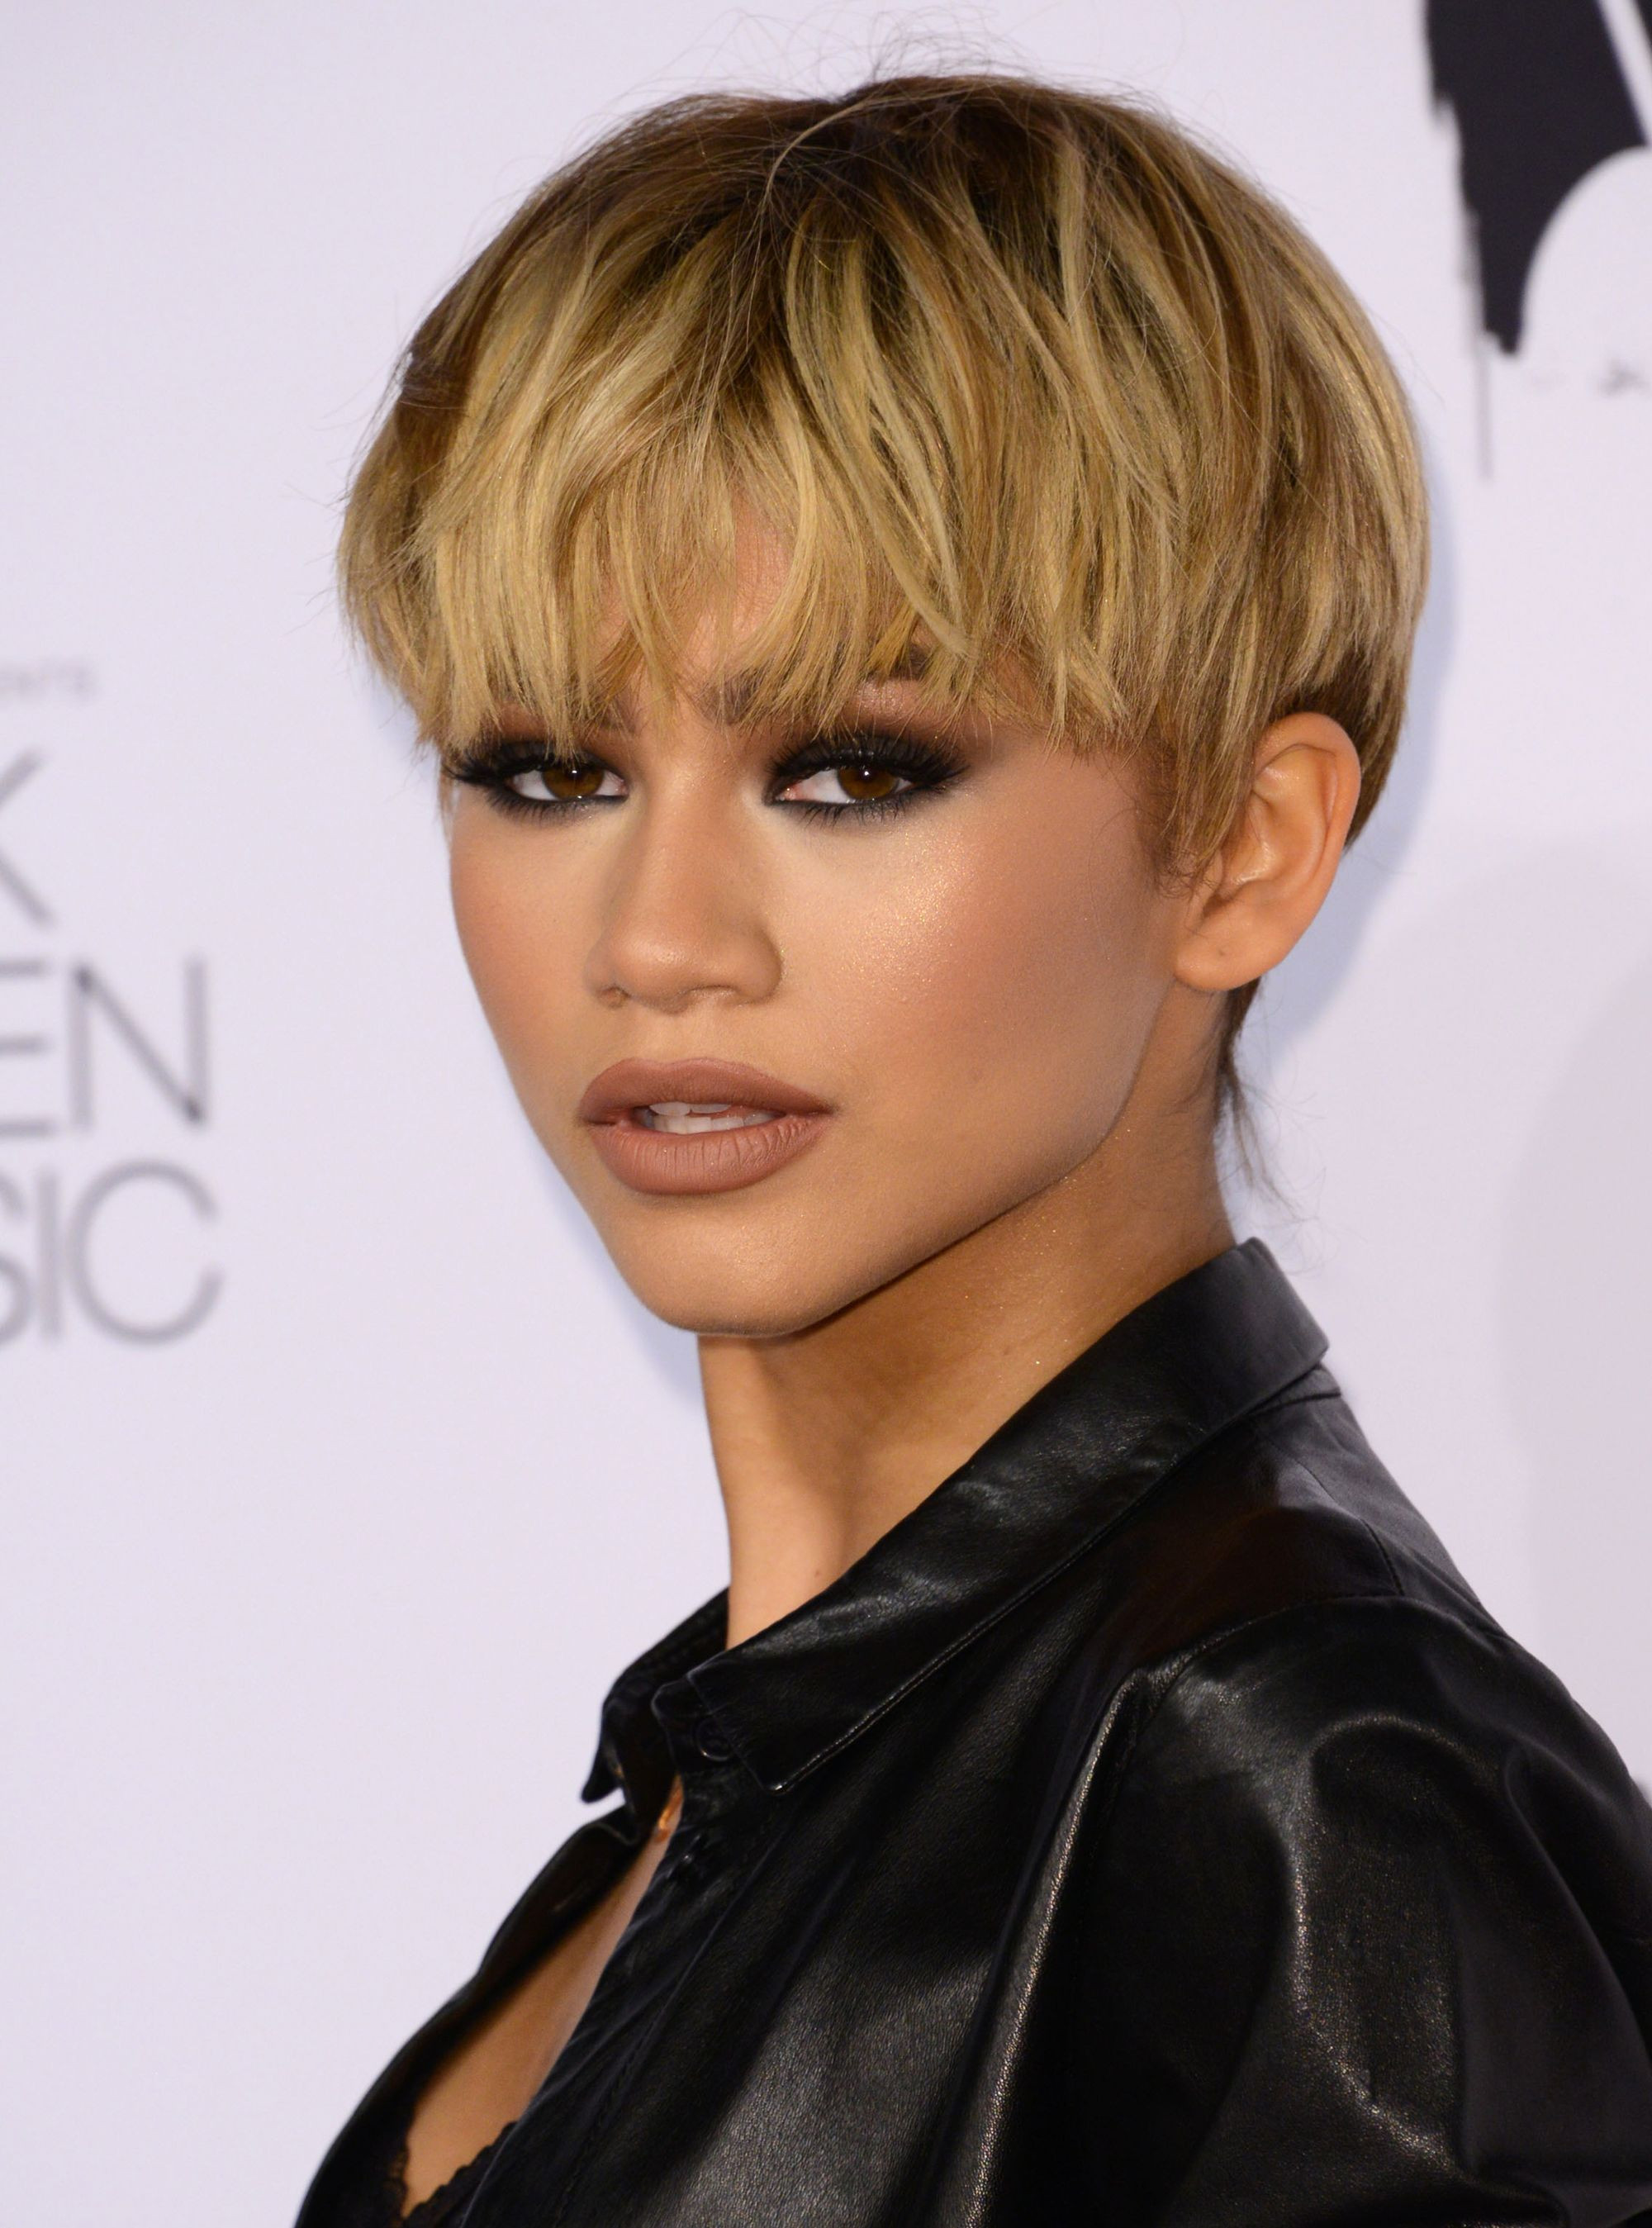 Best ideas about Celebrity Short Hairstyles . Save or Pin 10 Ways to Rock Short Hair Like a Celebrity Now.